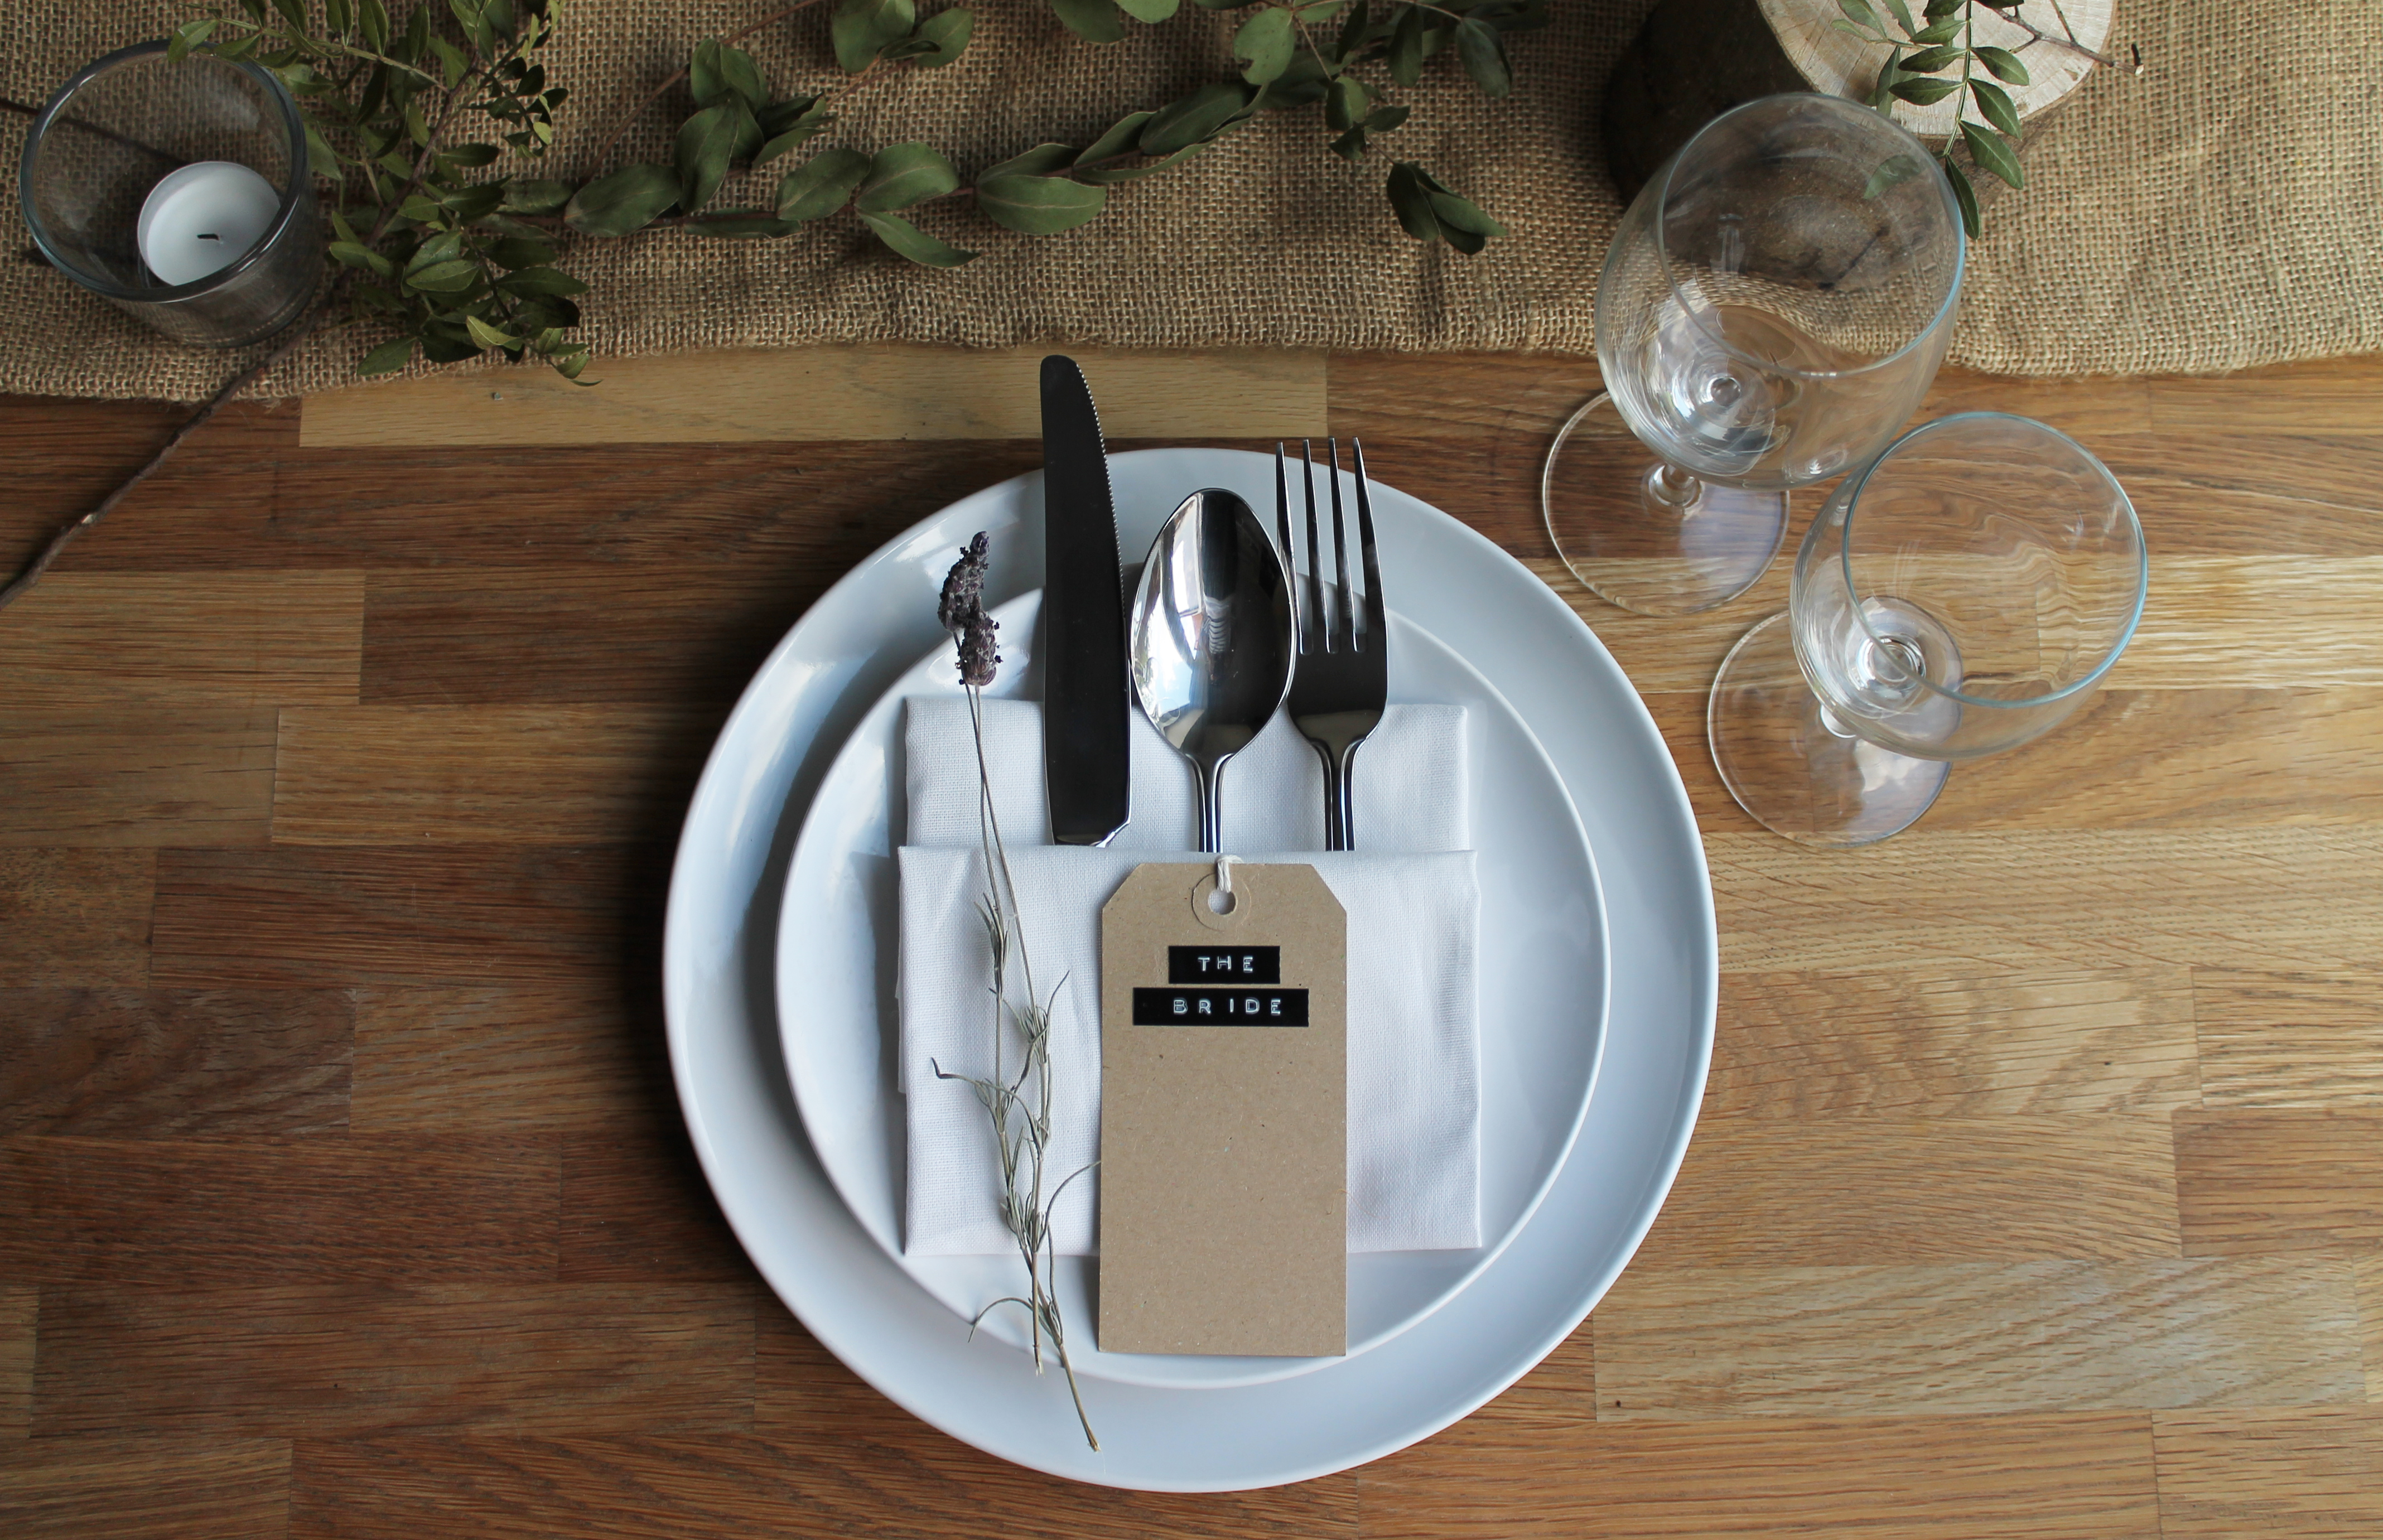 5 rustic place setting ideas the little lending company. Black Bedroom Furniture Sets. Home Design Ideas